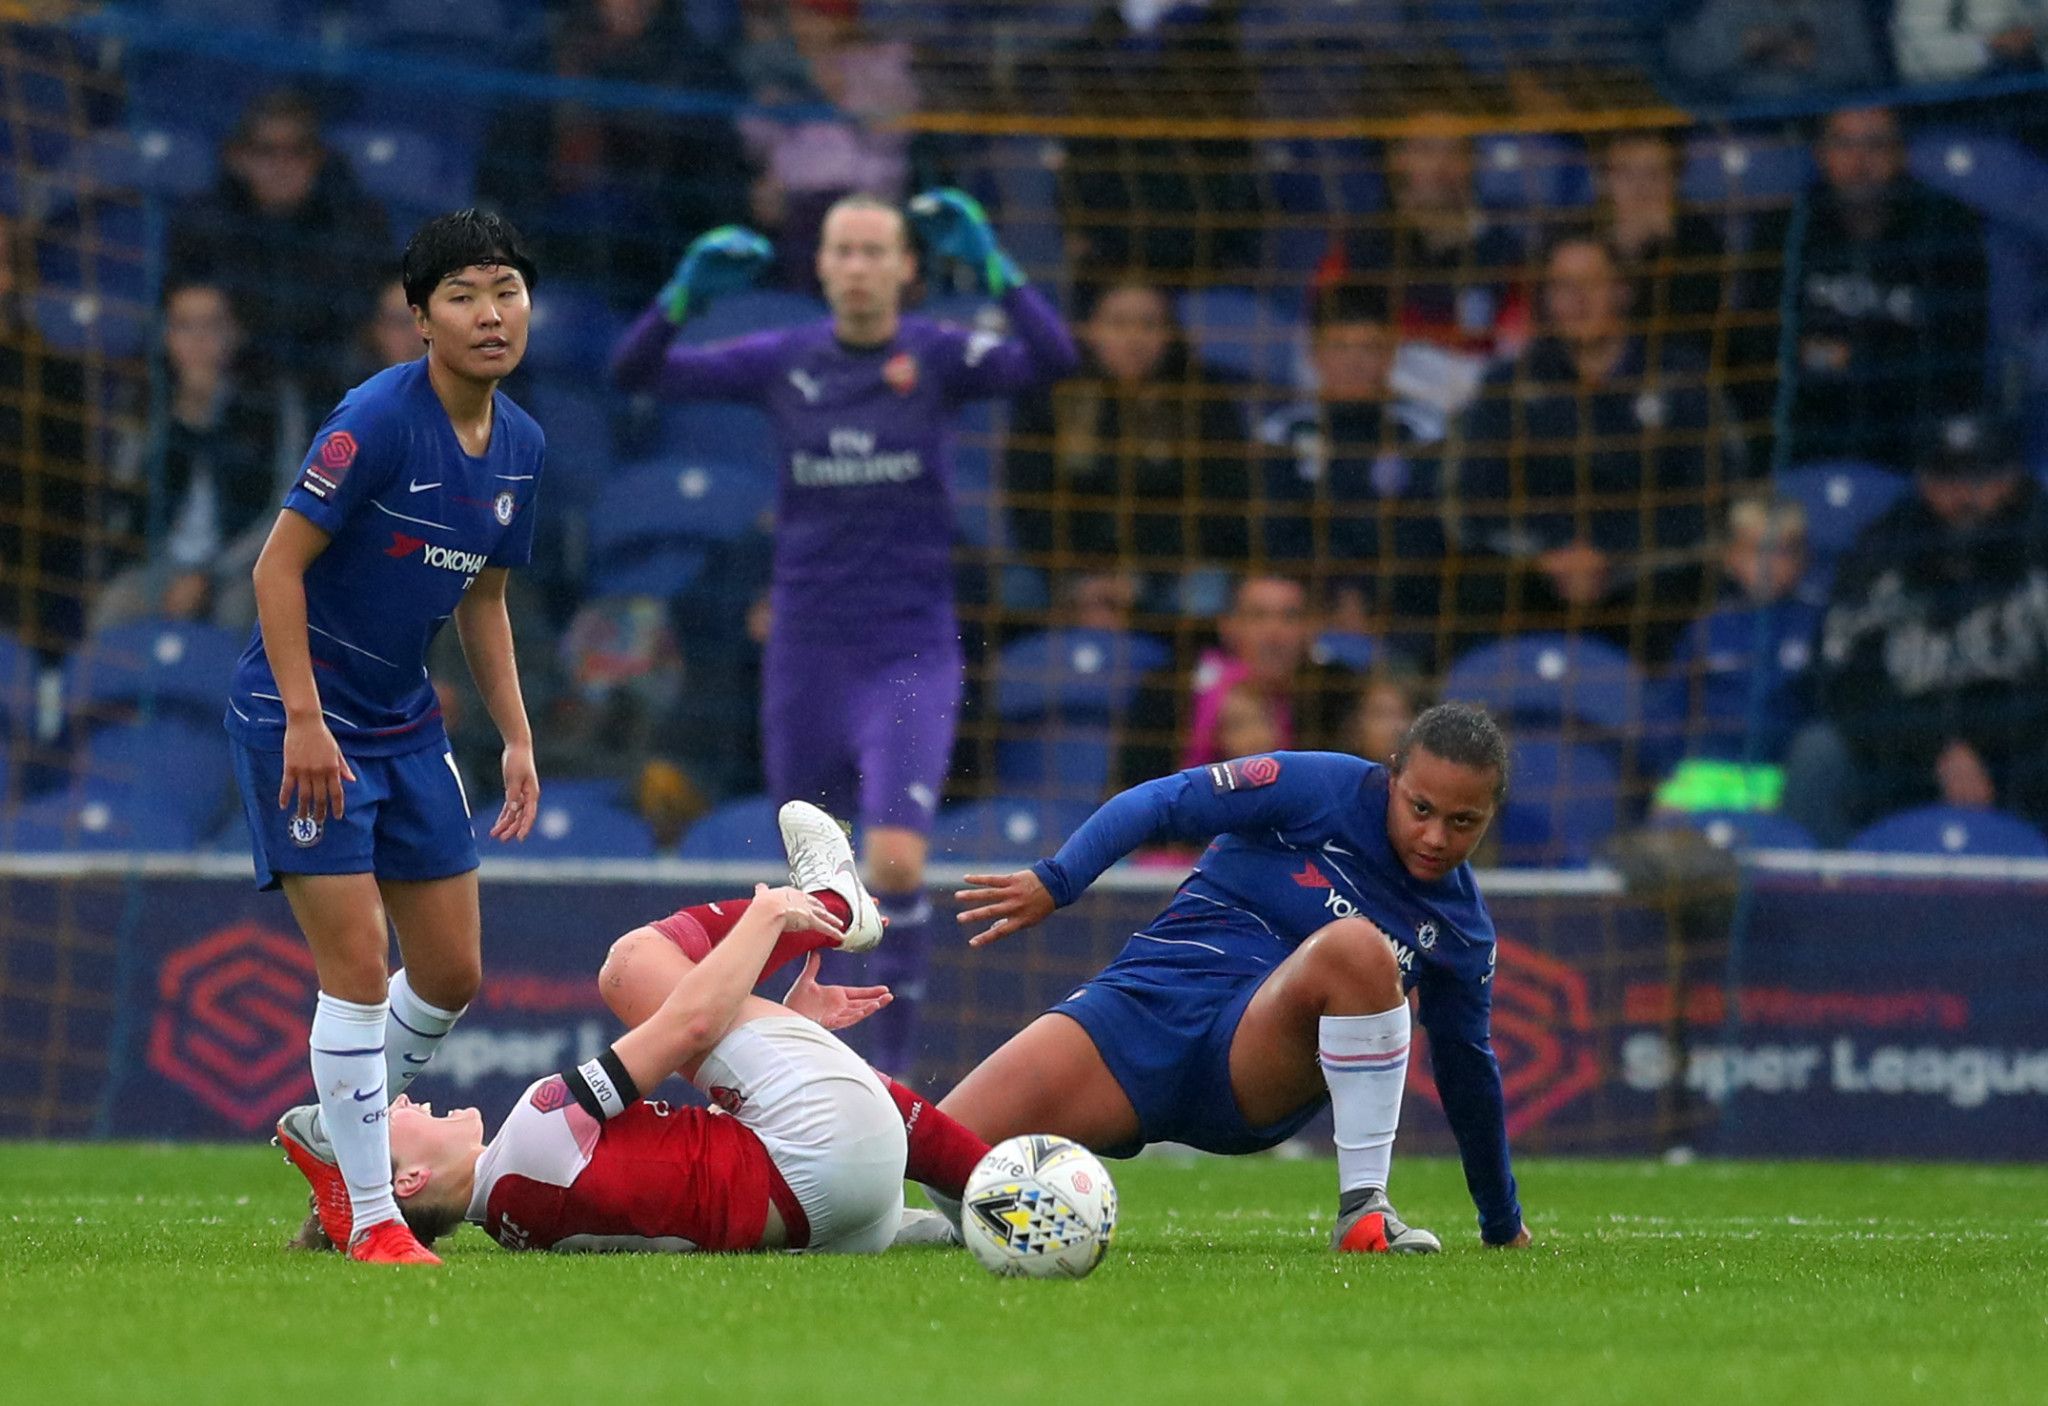 Chelsea's Drew Spence was only given a yellow card for a tackle which broke the leg of Arsenal's Kim Little, an example of the poor standard of officiating which can sometimes be found in women's football ©Getty Images